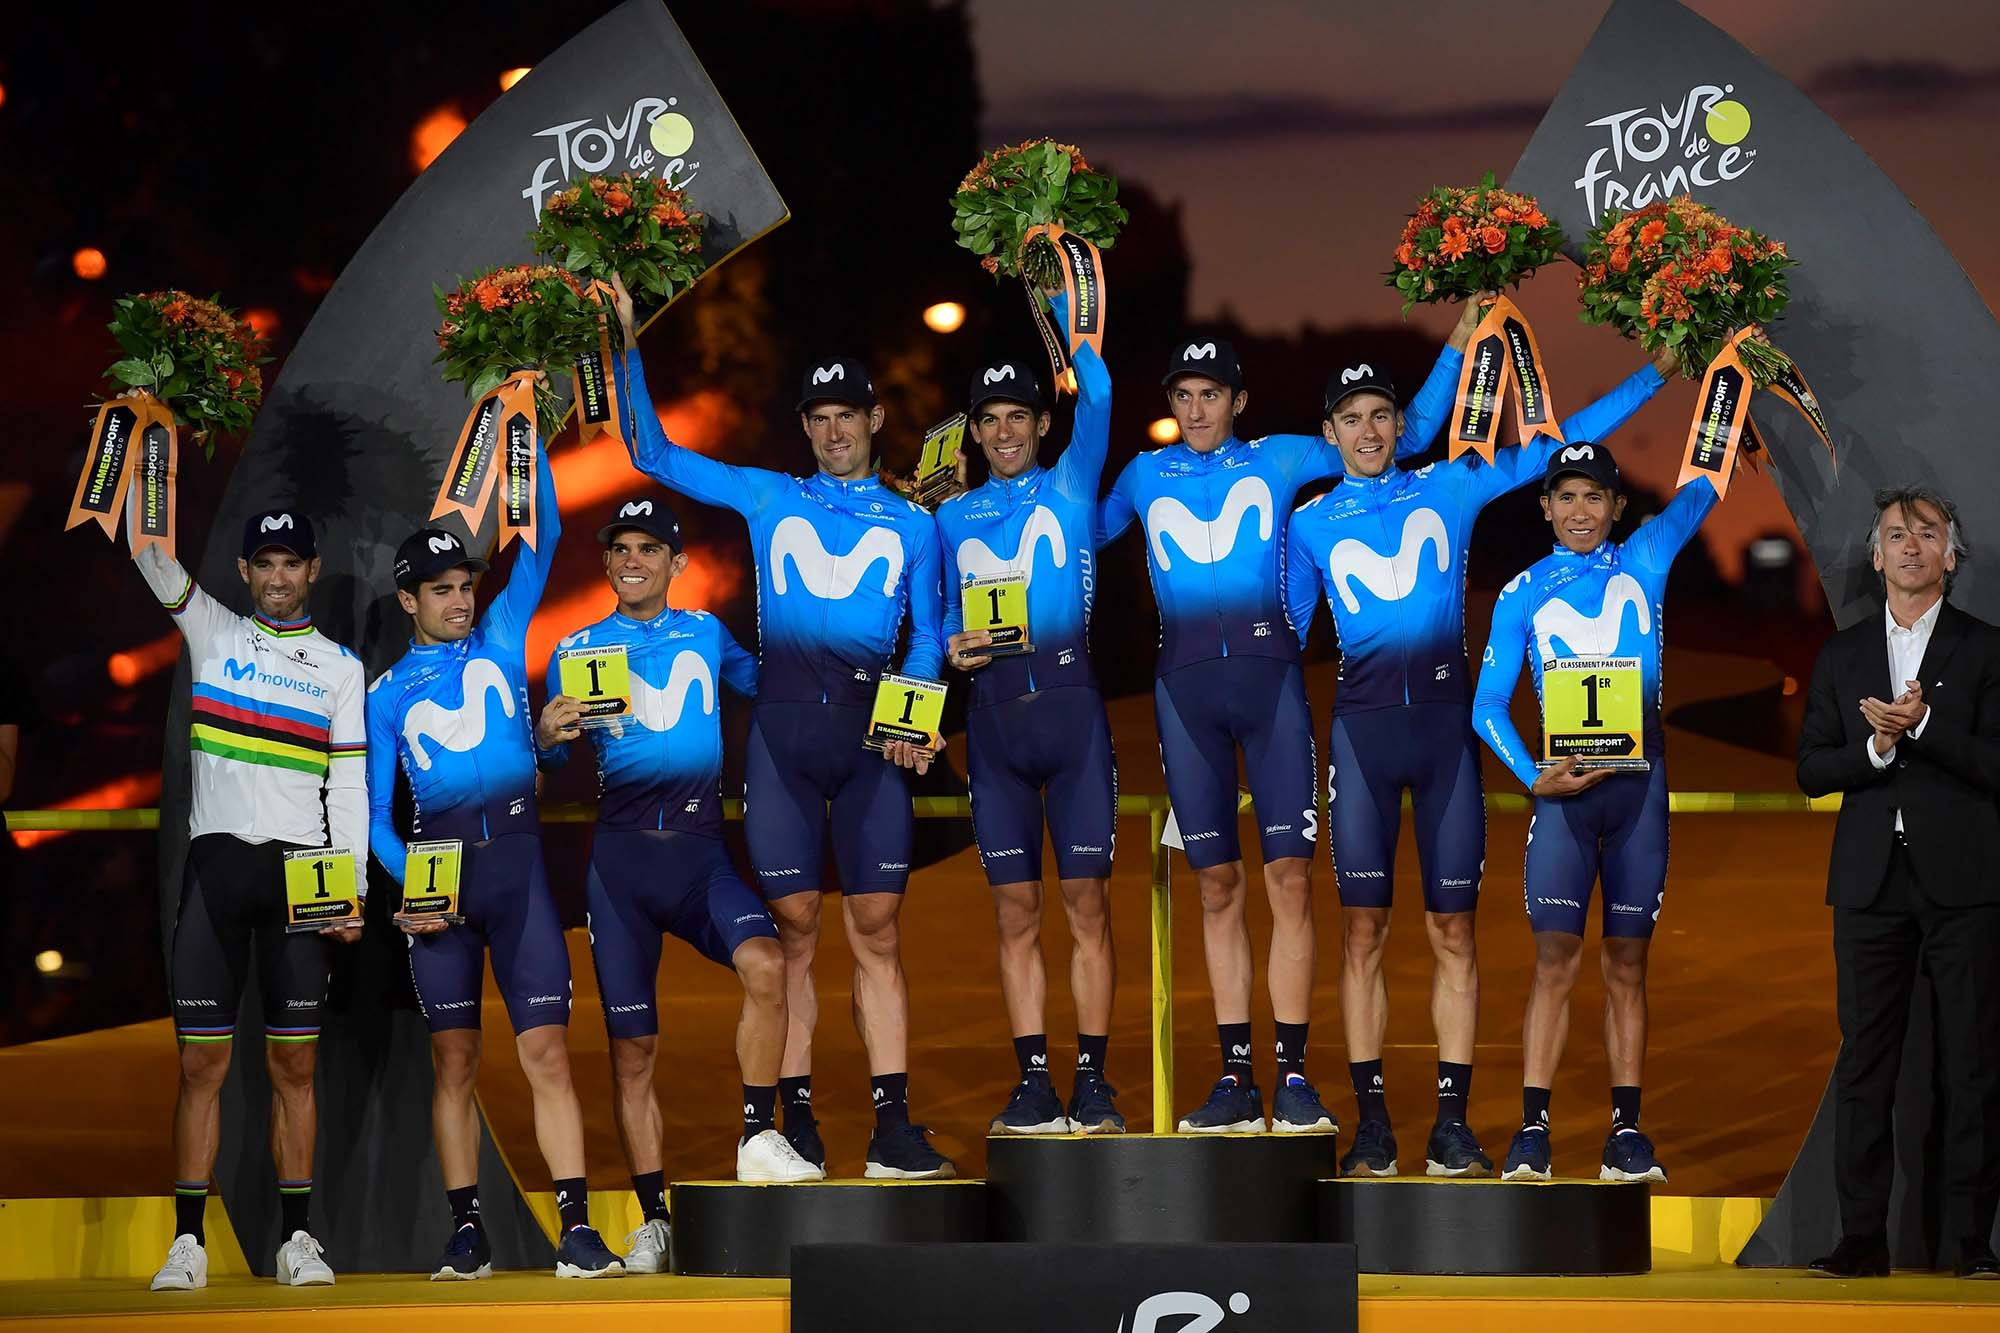 Tour de France 2019 - 106th Edition - 21th stage Rambouillet - Paris 127 km - 28/07/2019 - Movistar Team - photo Nico Vereecken/PN/BettiniPhoto©2019